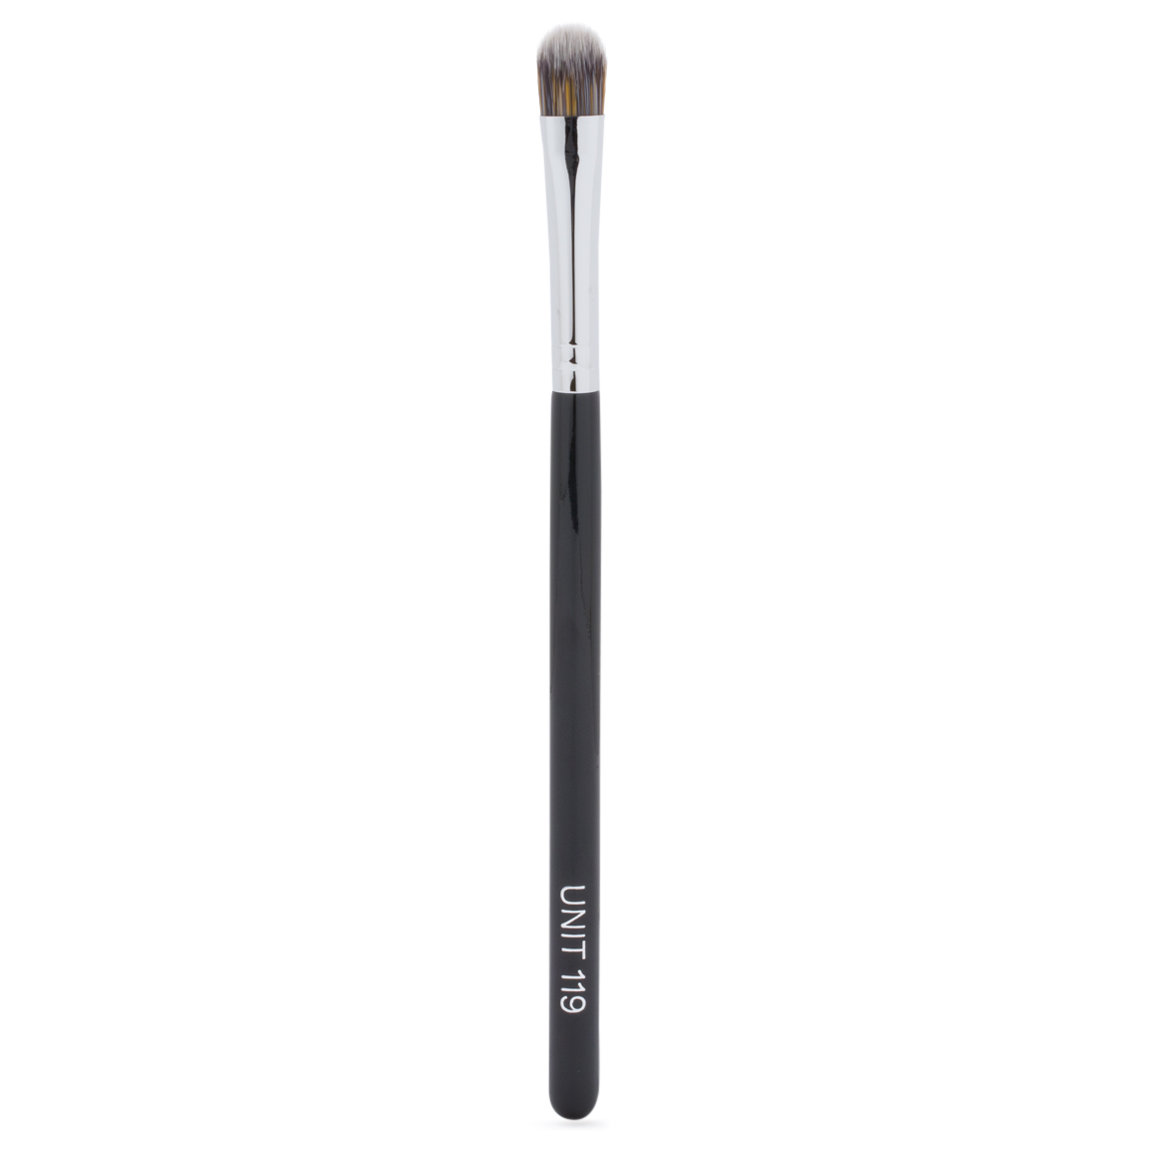 UNIT 119 Eye Brush